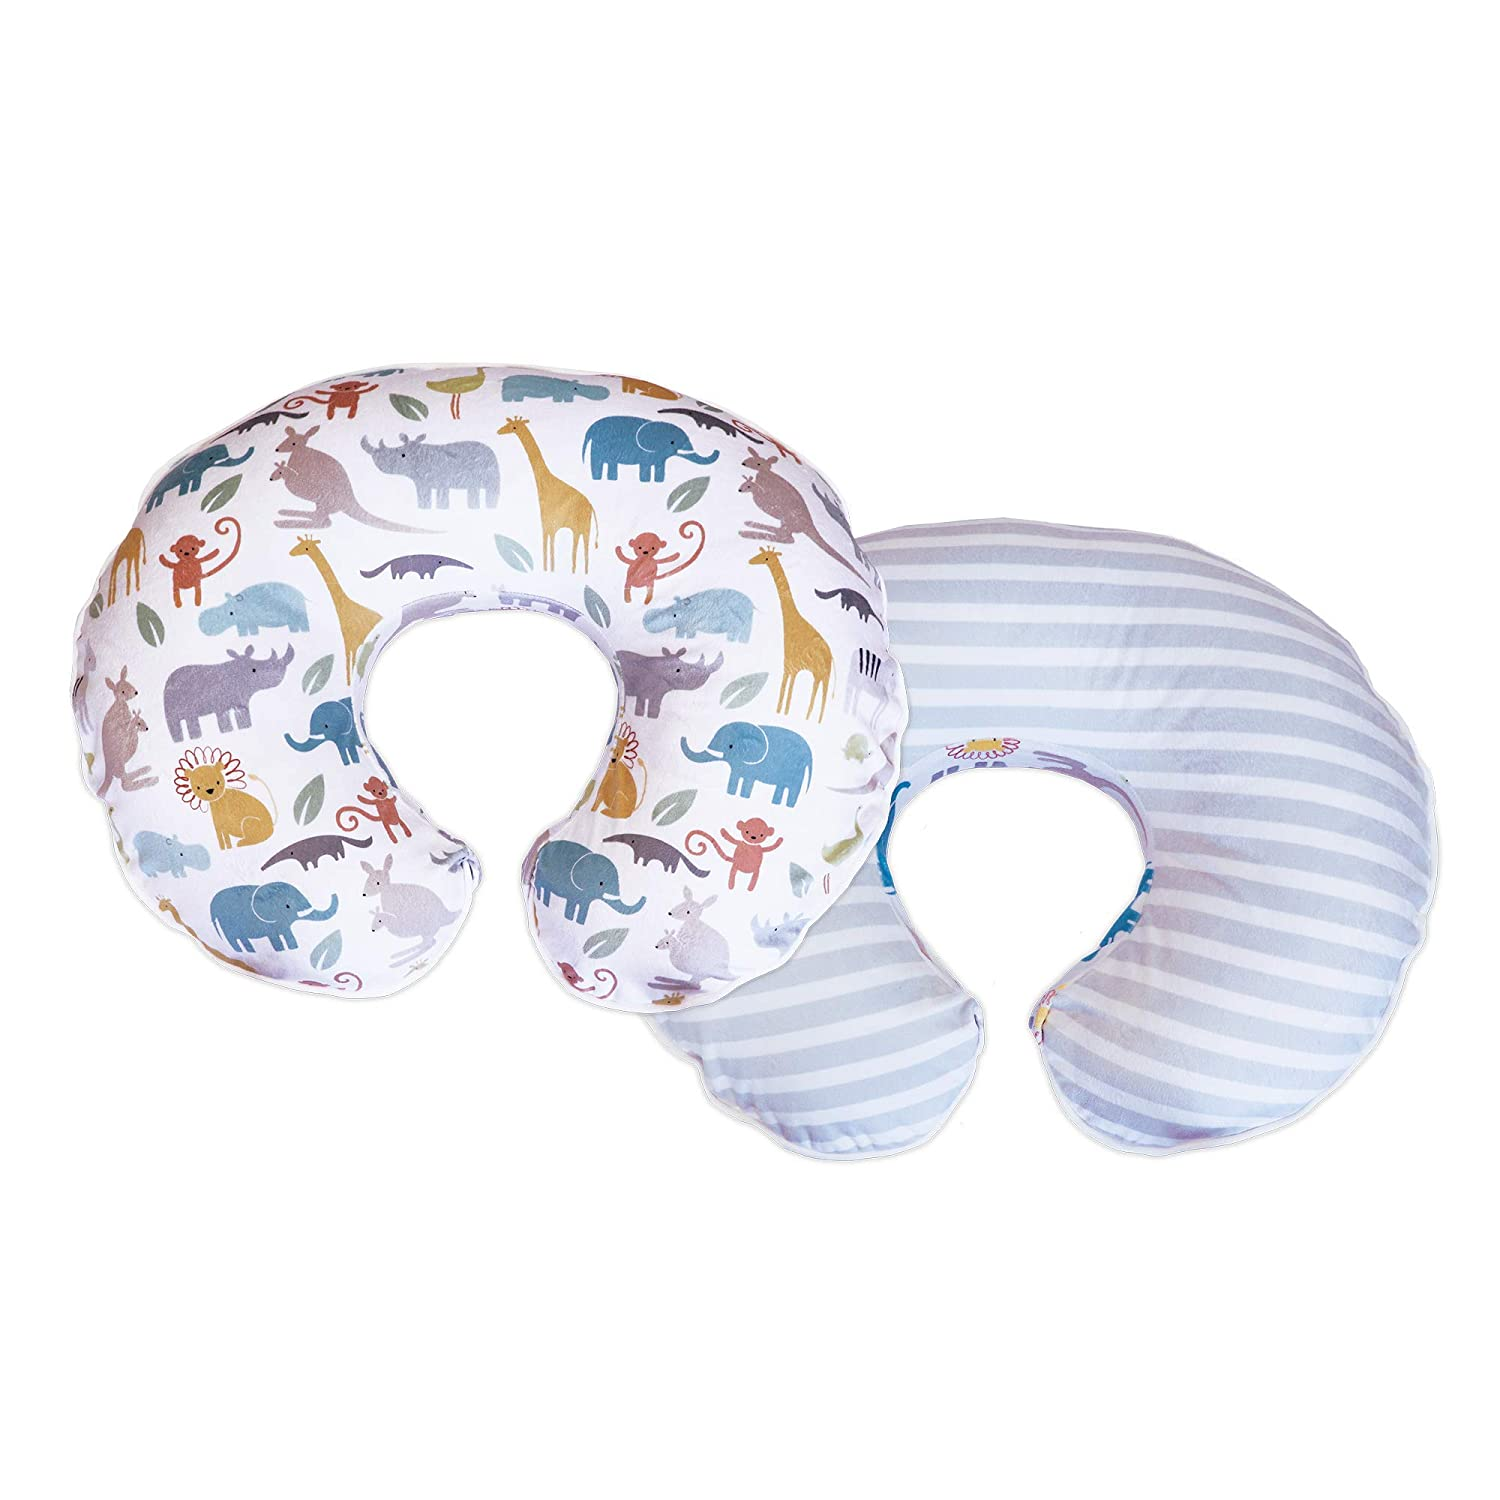 Boppy Boutique Pillow Cover, Pastel Animal Stripe, Minky Fabric in A Fashionable Two-Sided Design, Fits All Nursing Pillows & Positioners